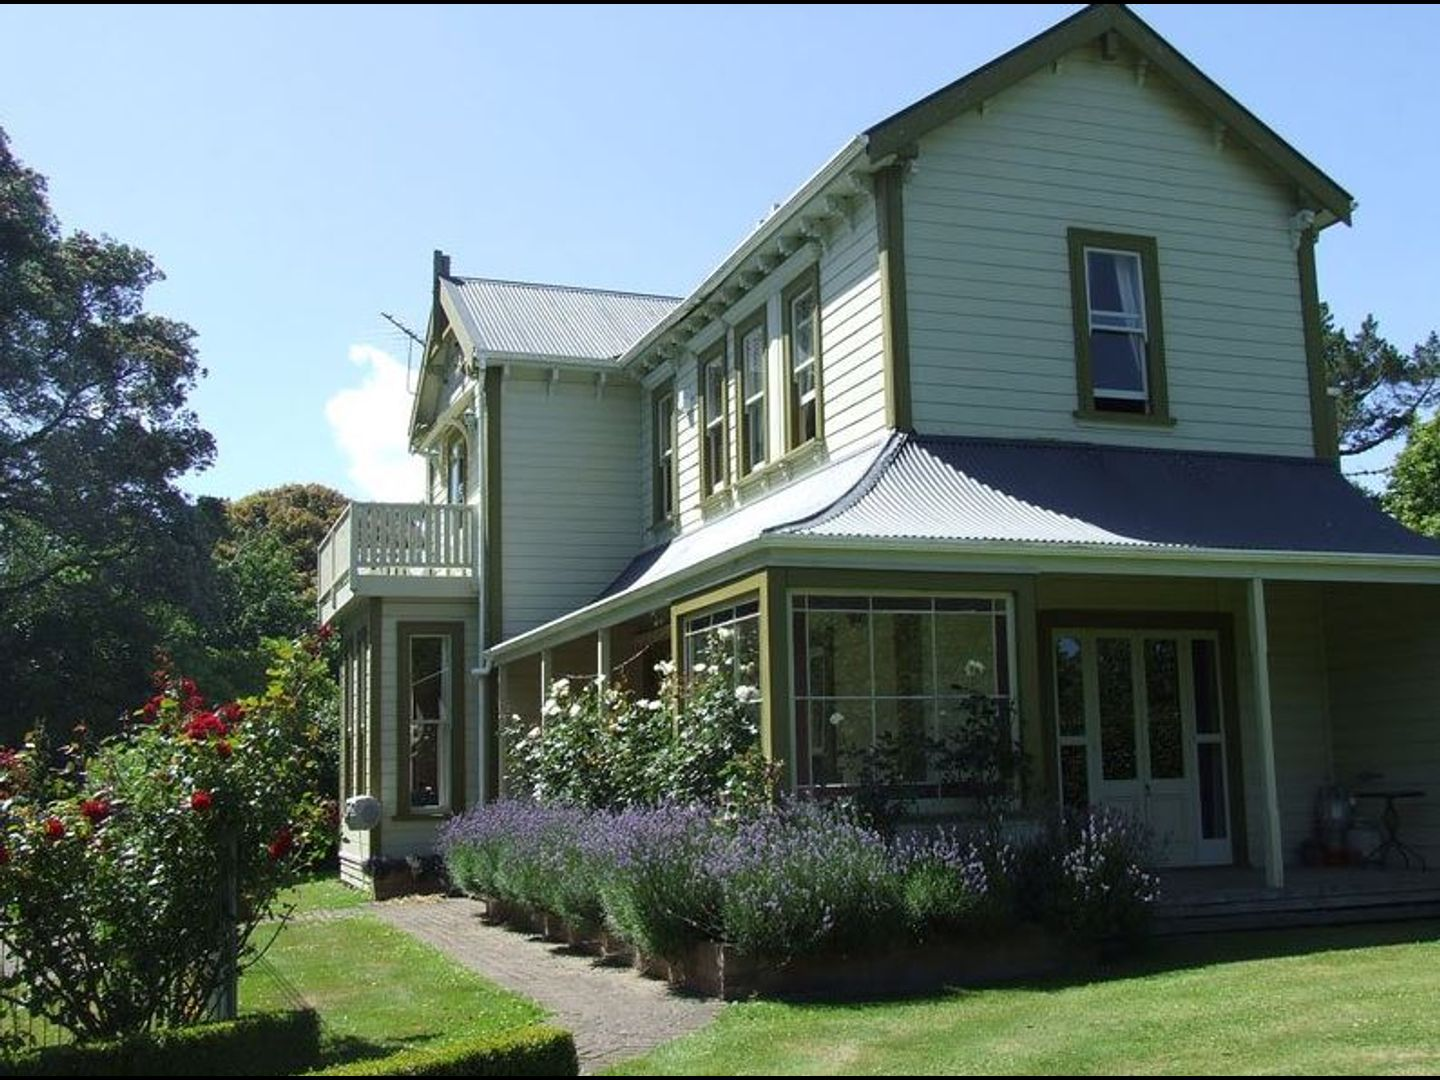 A house with bushes in front of a building at Tairoa Lodge & Cottage.